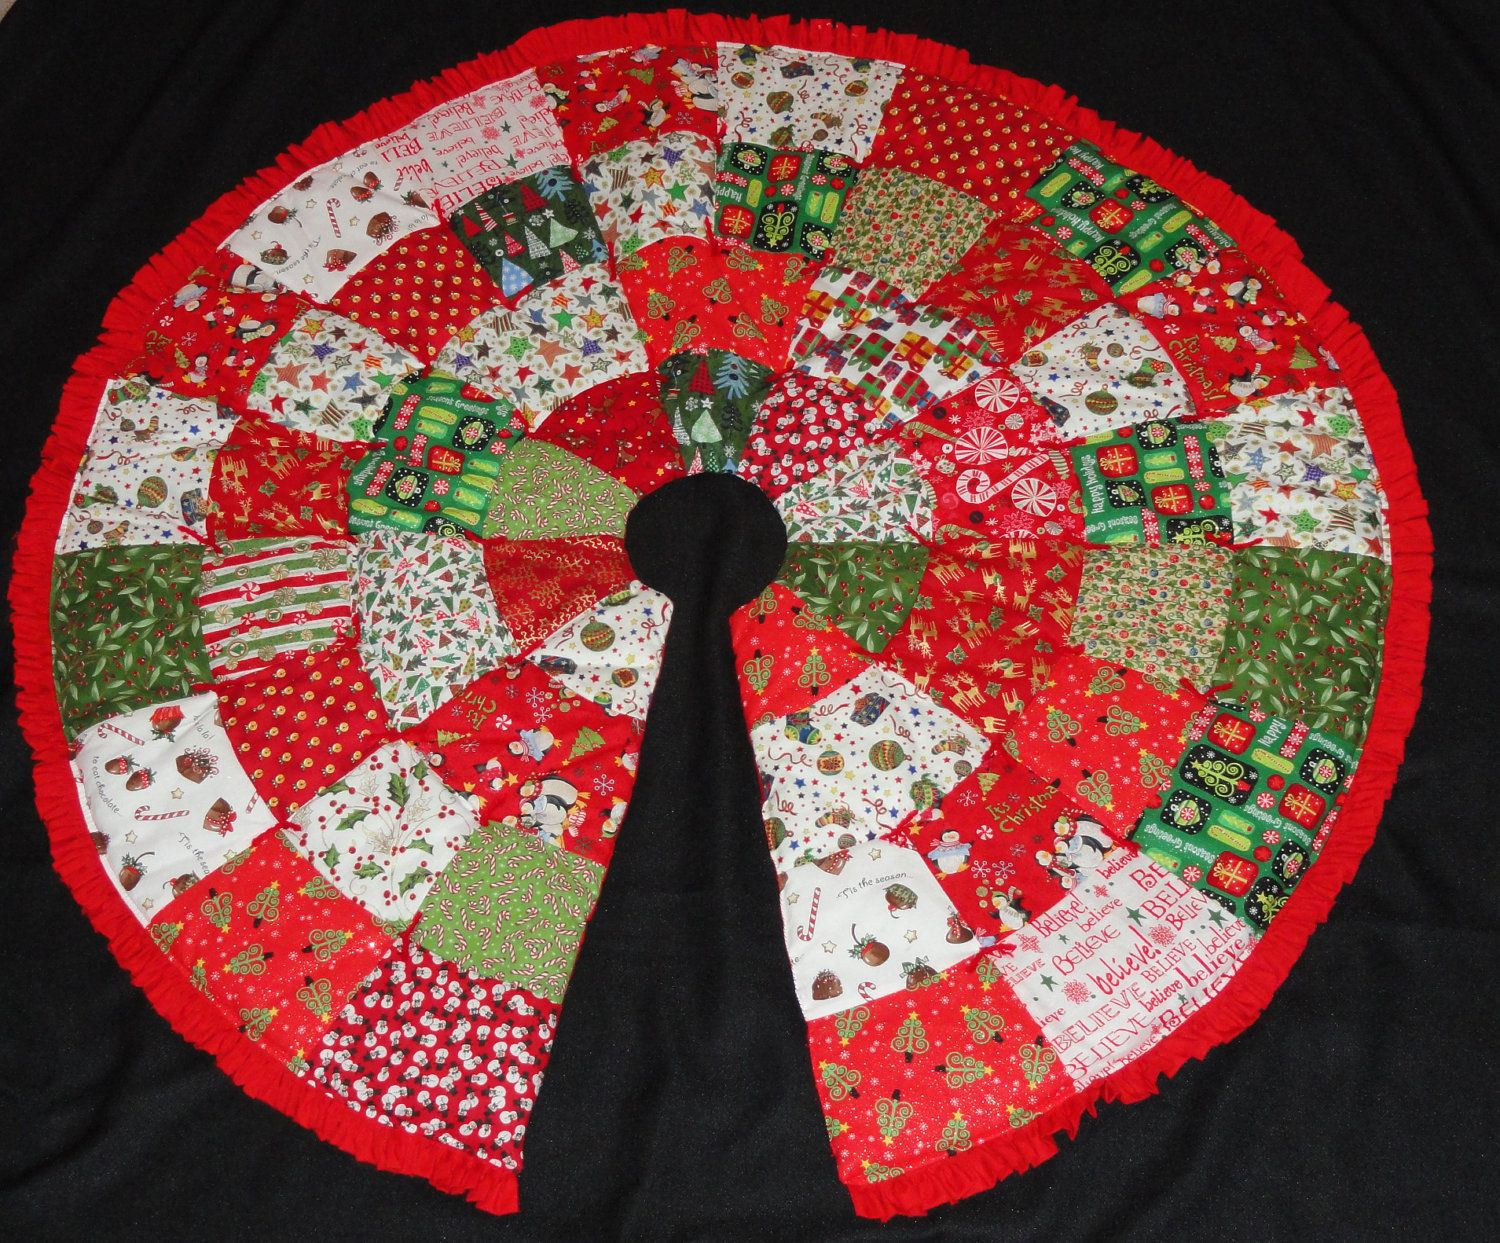 Christmas Tree Skirt Pattern By Elainescatterbrain On Etsy X3ELdQPA